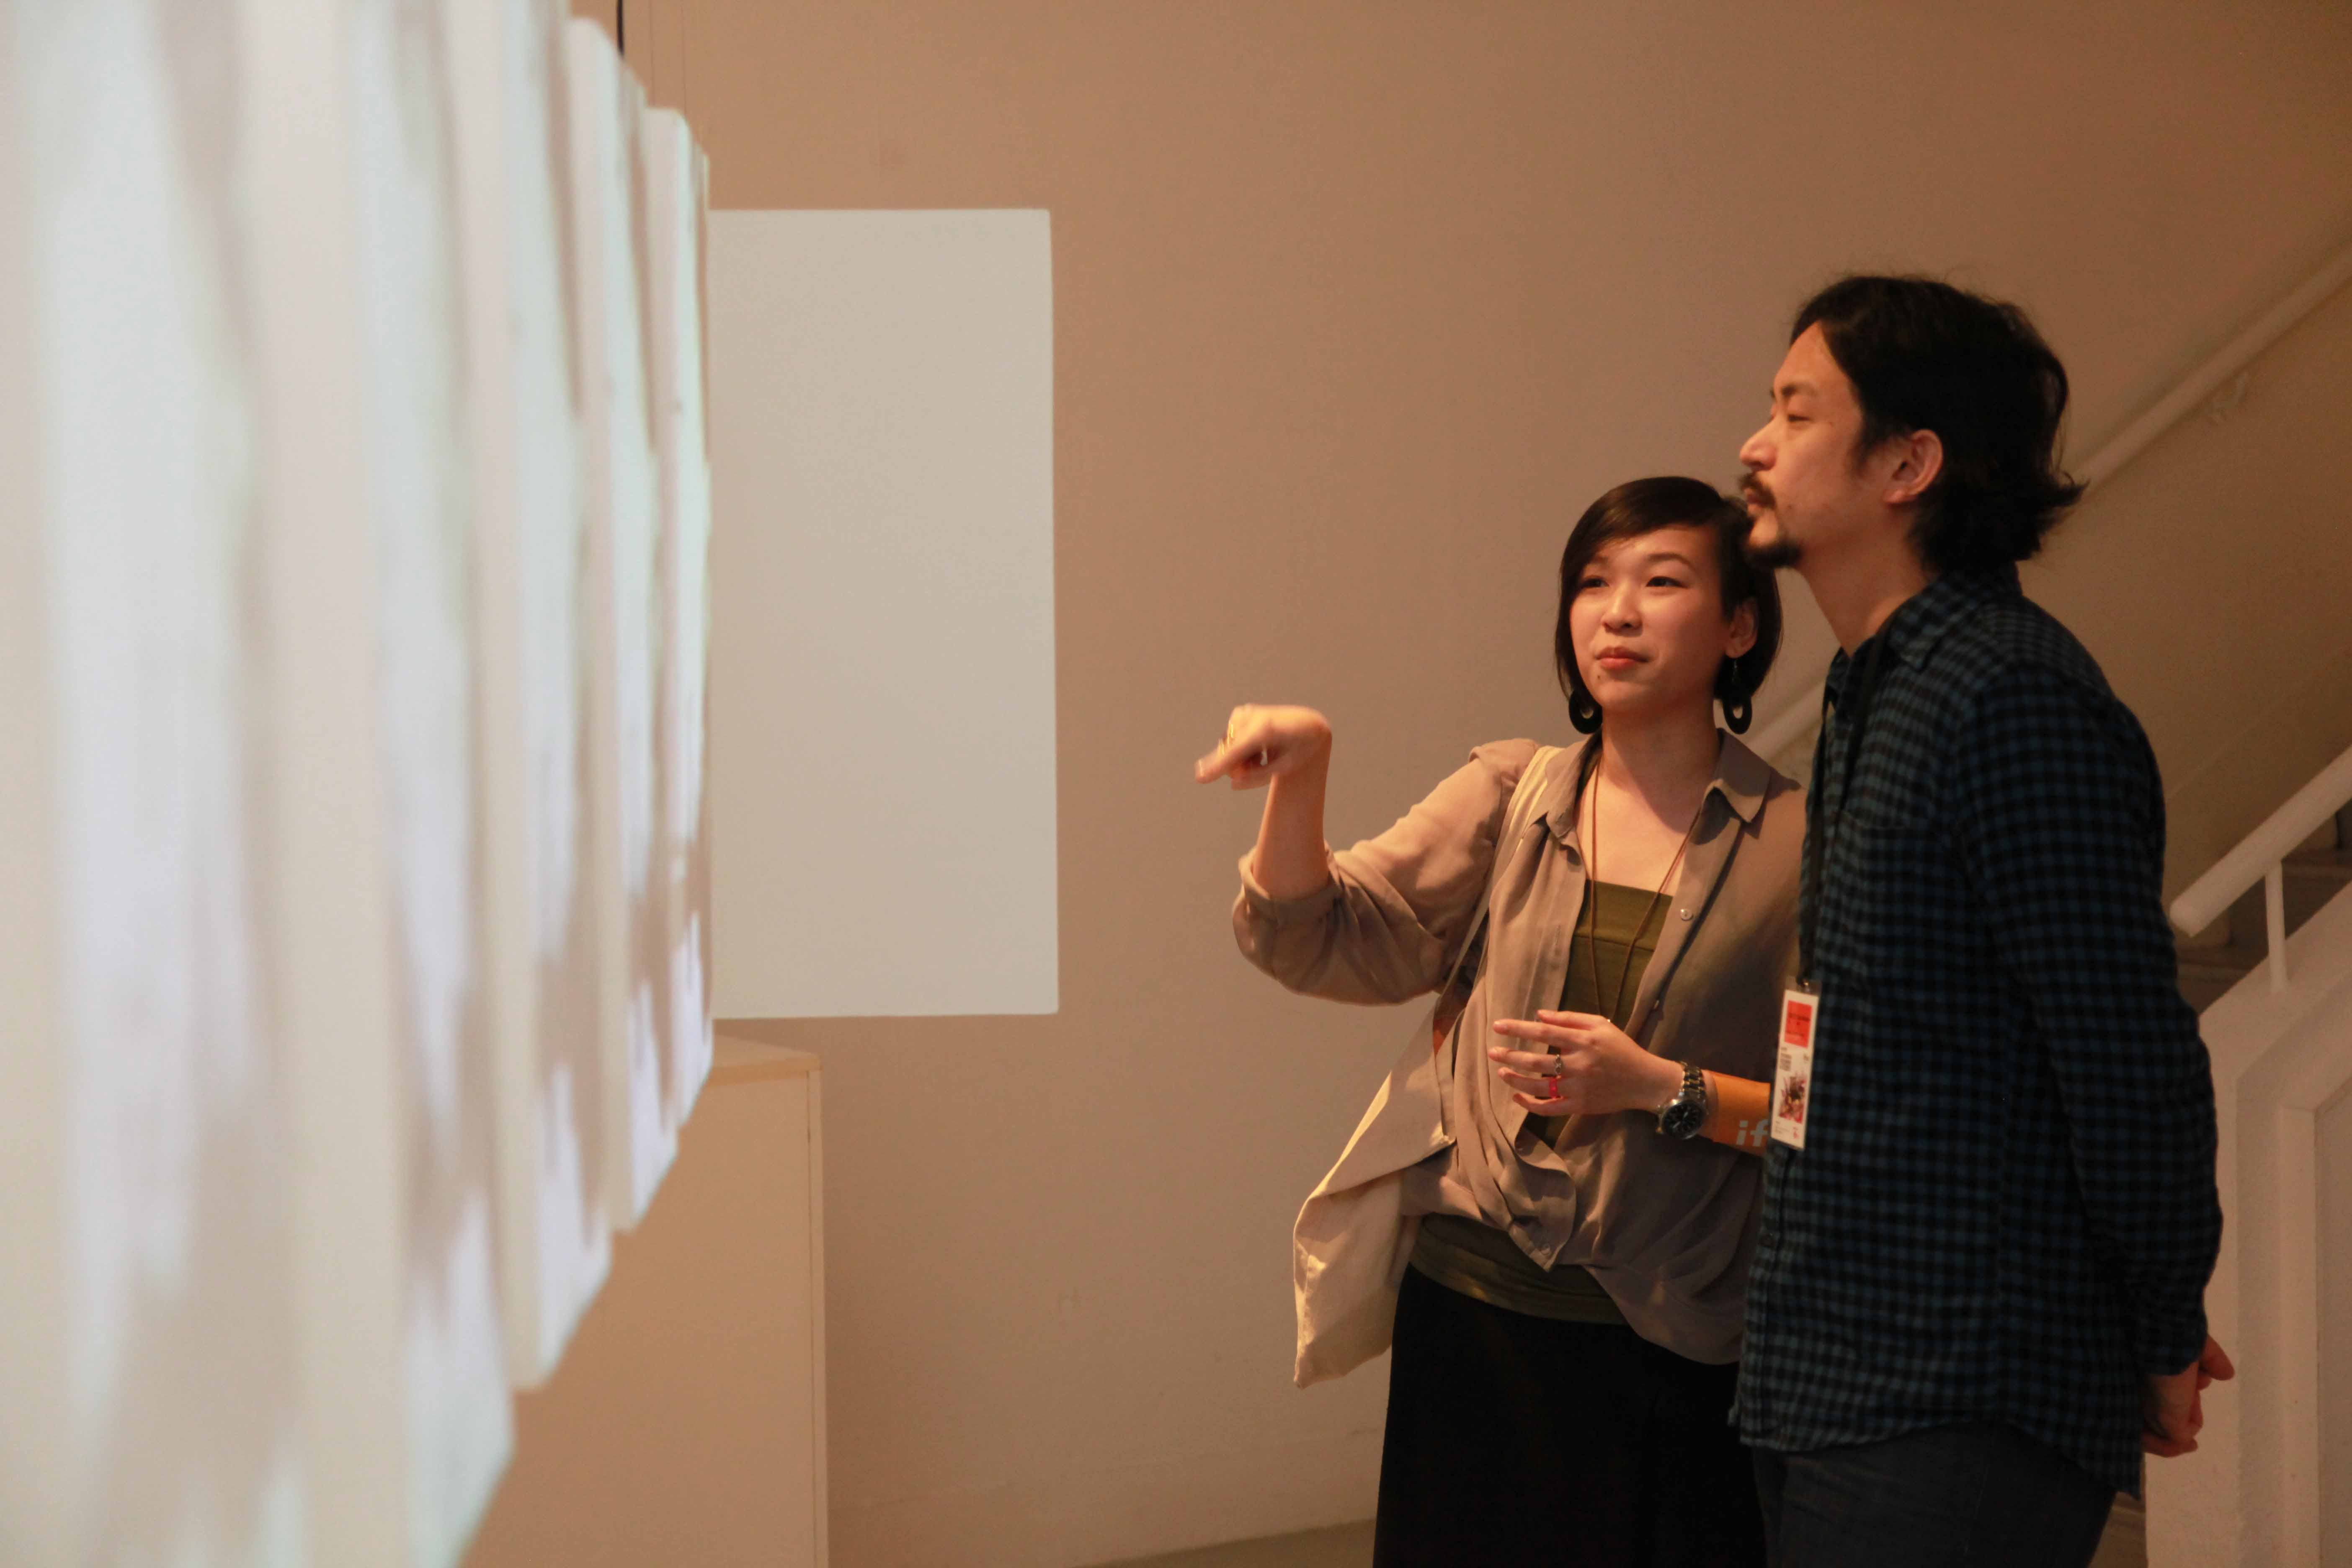 Chan Woon-ling Naomi, one of the finalists introduced her work <i>Present Moment</i> to Daito Manabe.